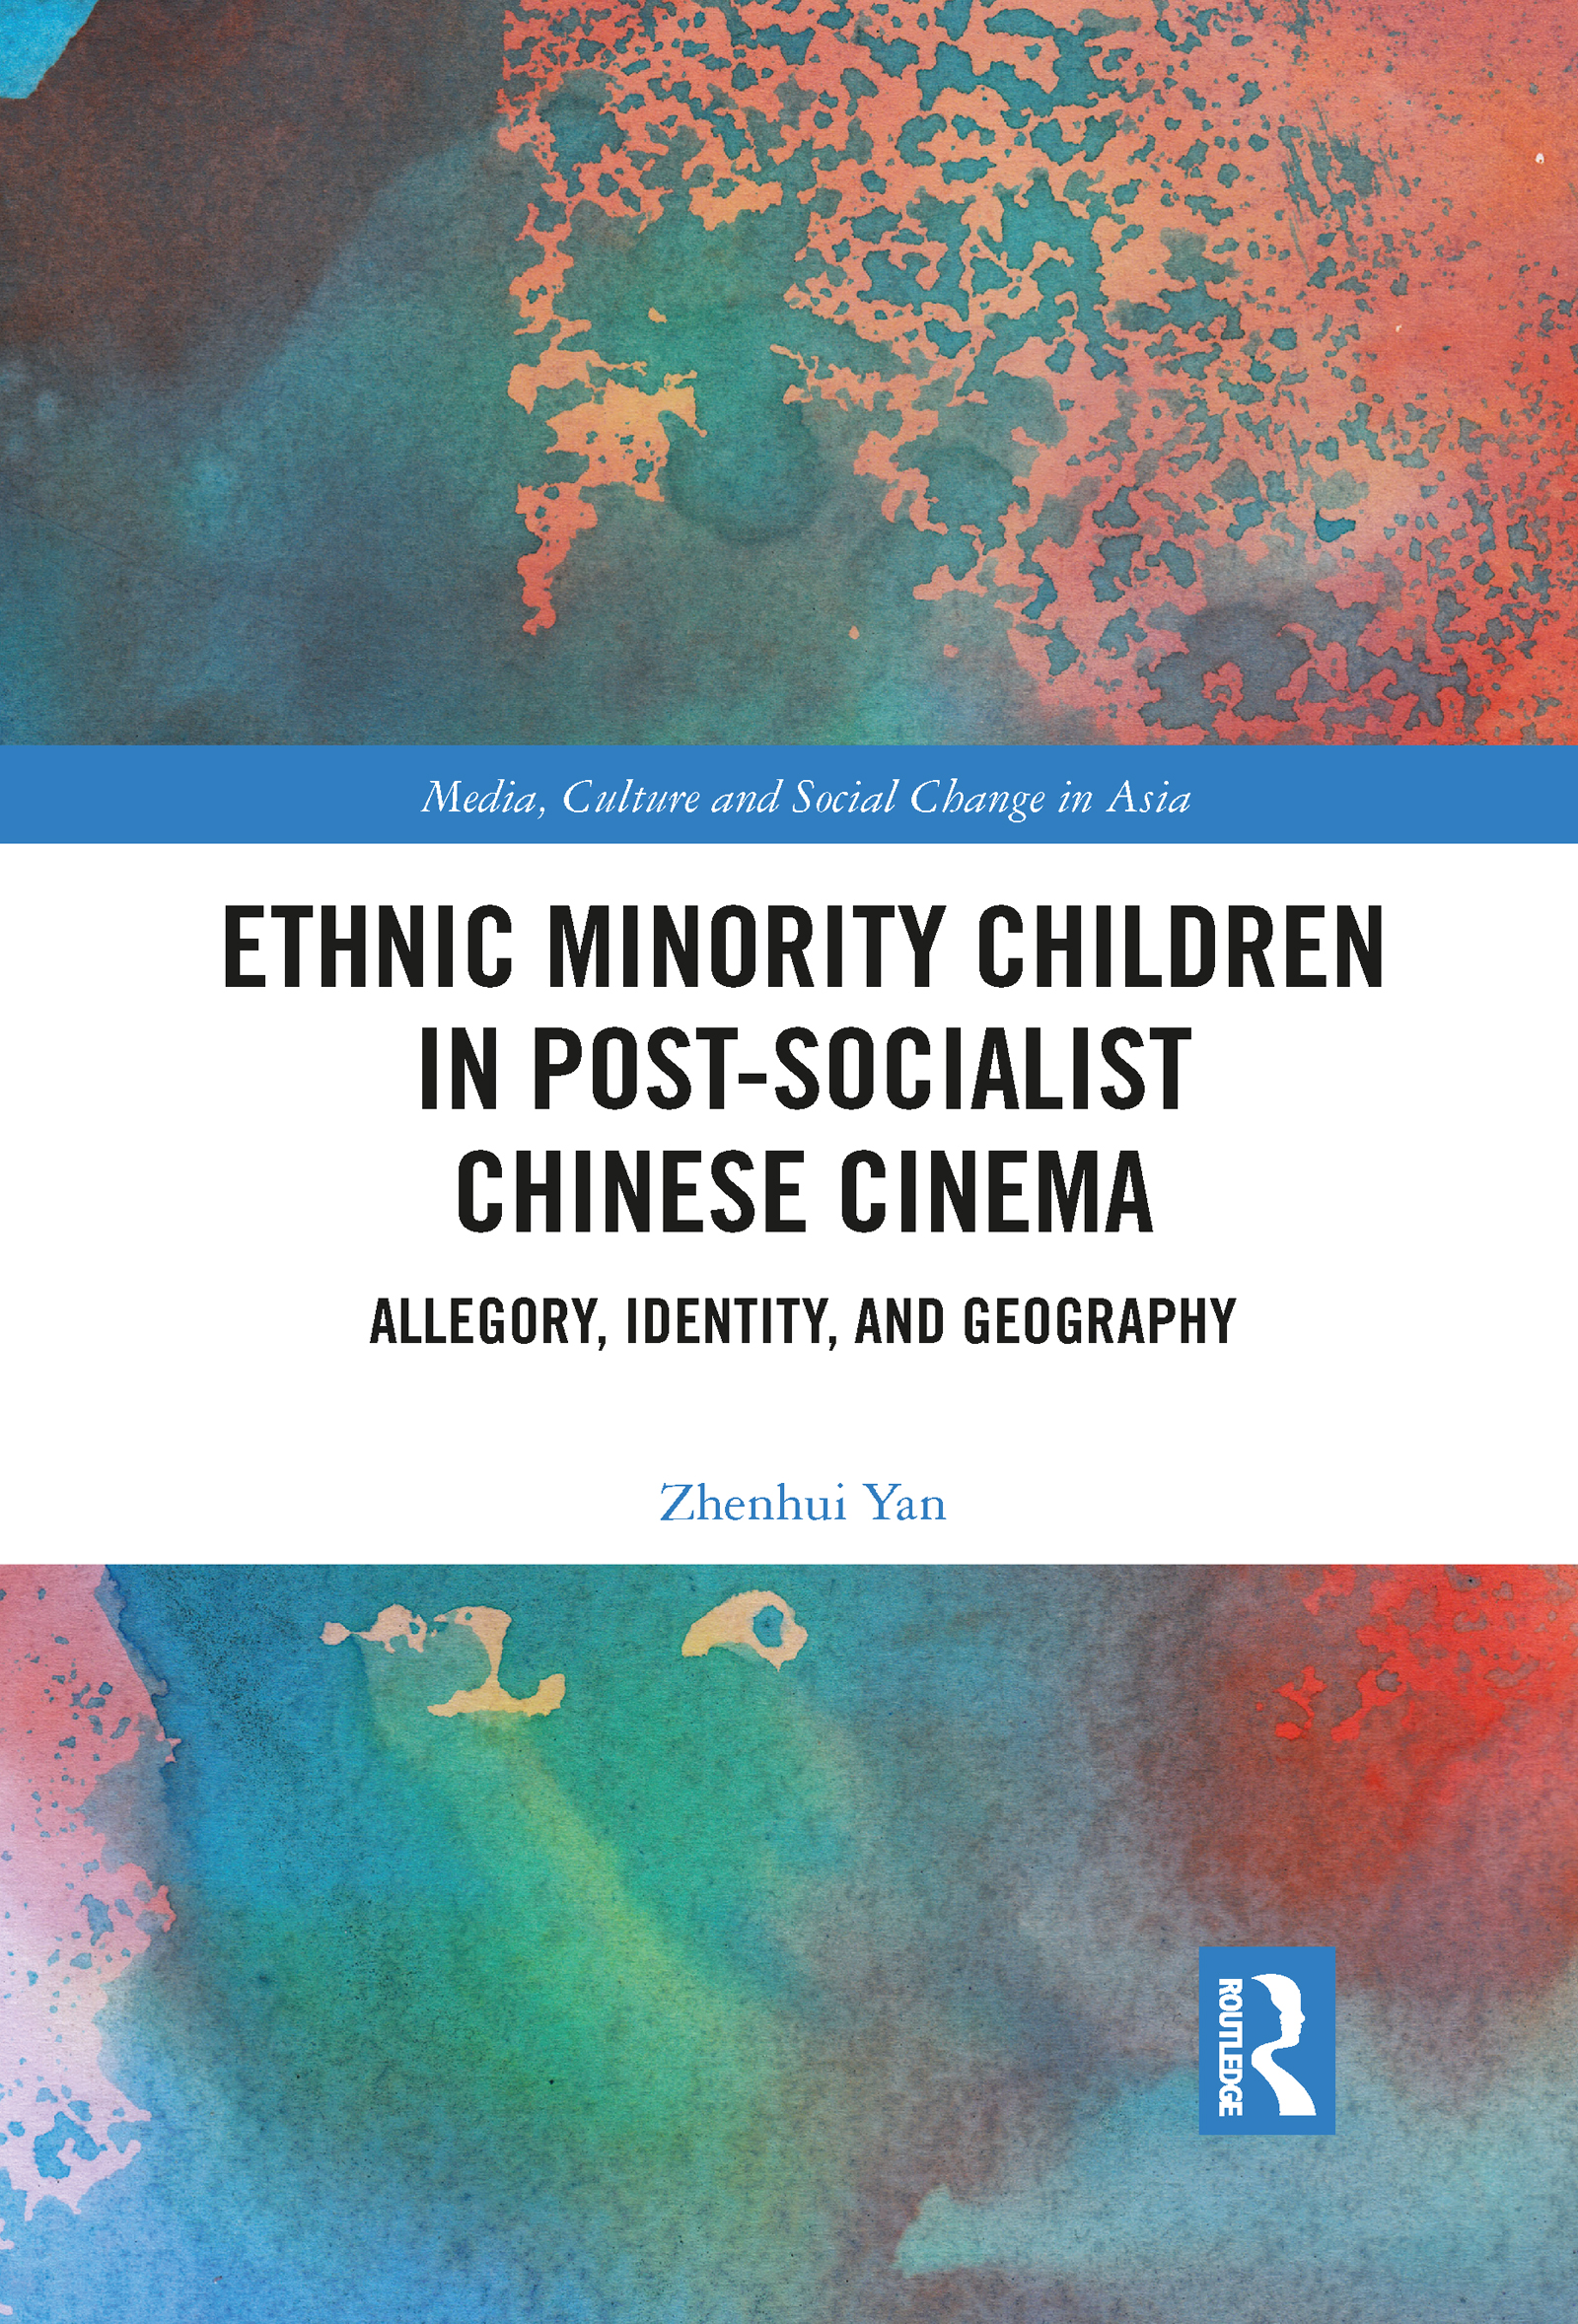 Ethnic Minority Children in Post-Socialist Chinese Cinema